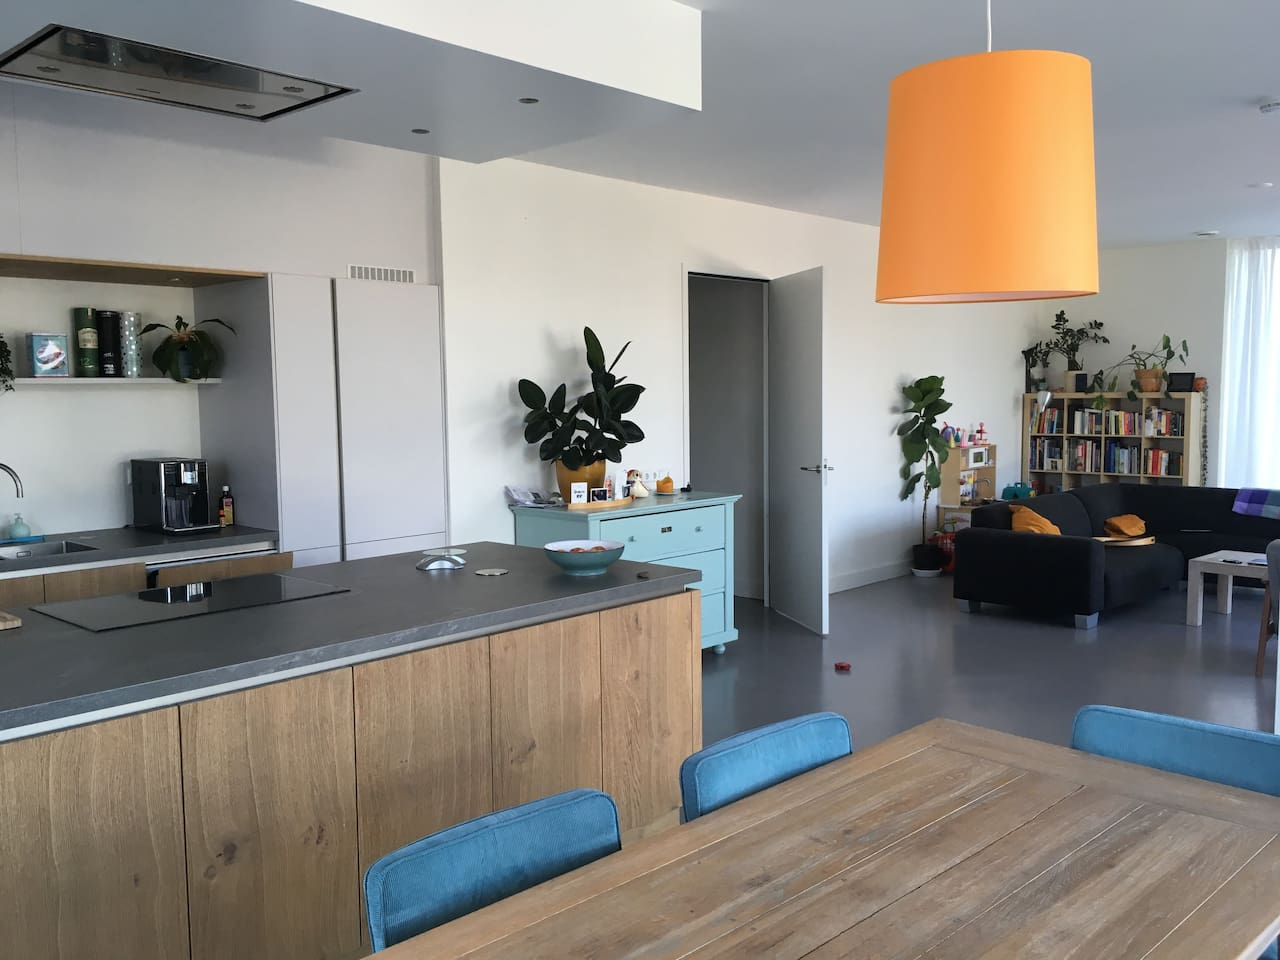 Livingroom of 50m2 with large kitchen